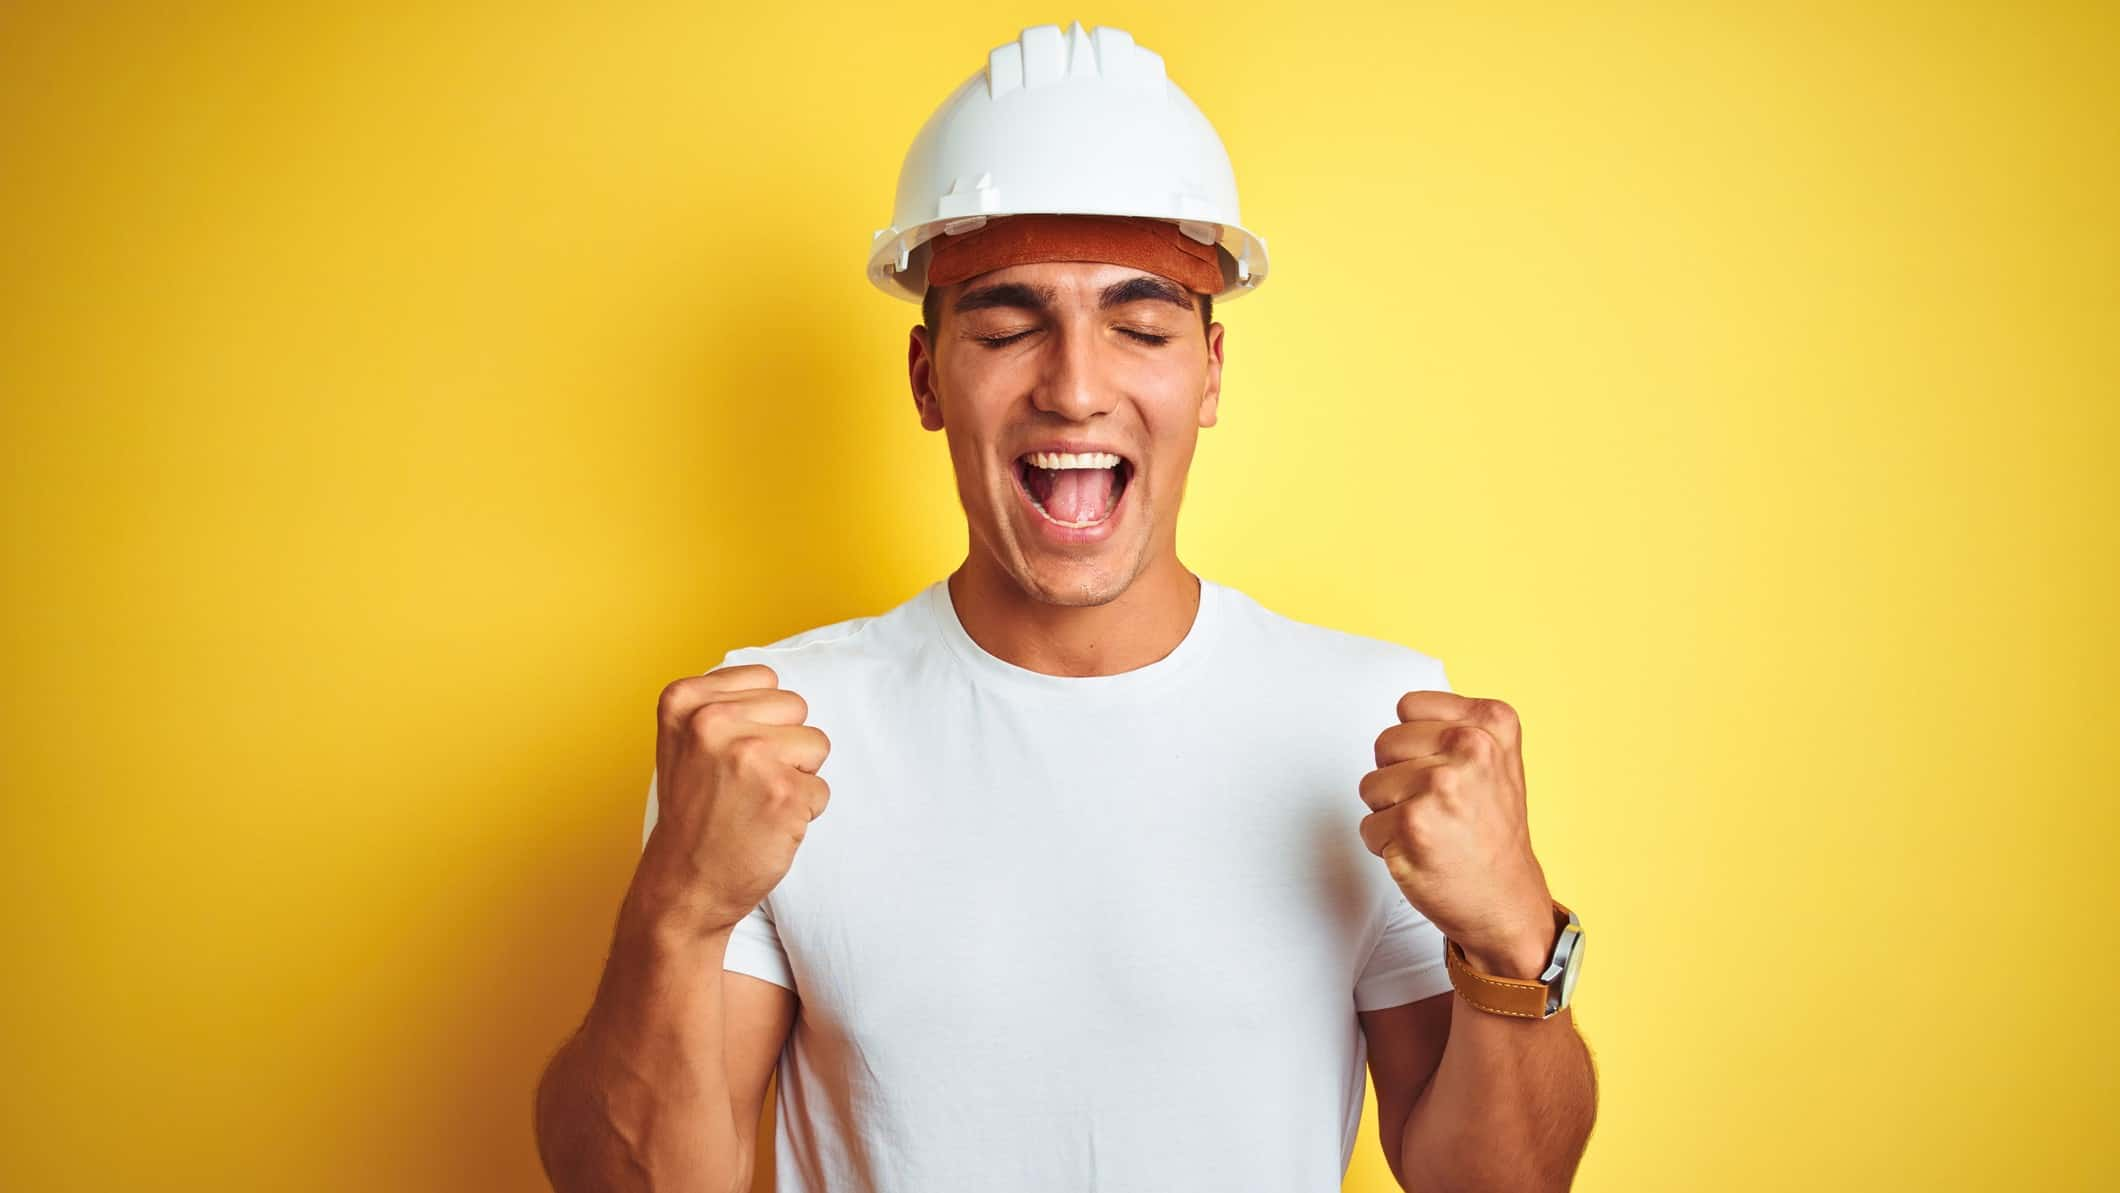 surging asx share price represented by man in hard hat making excited fists